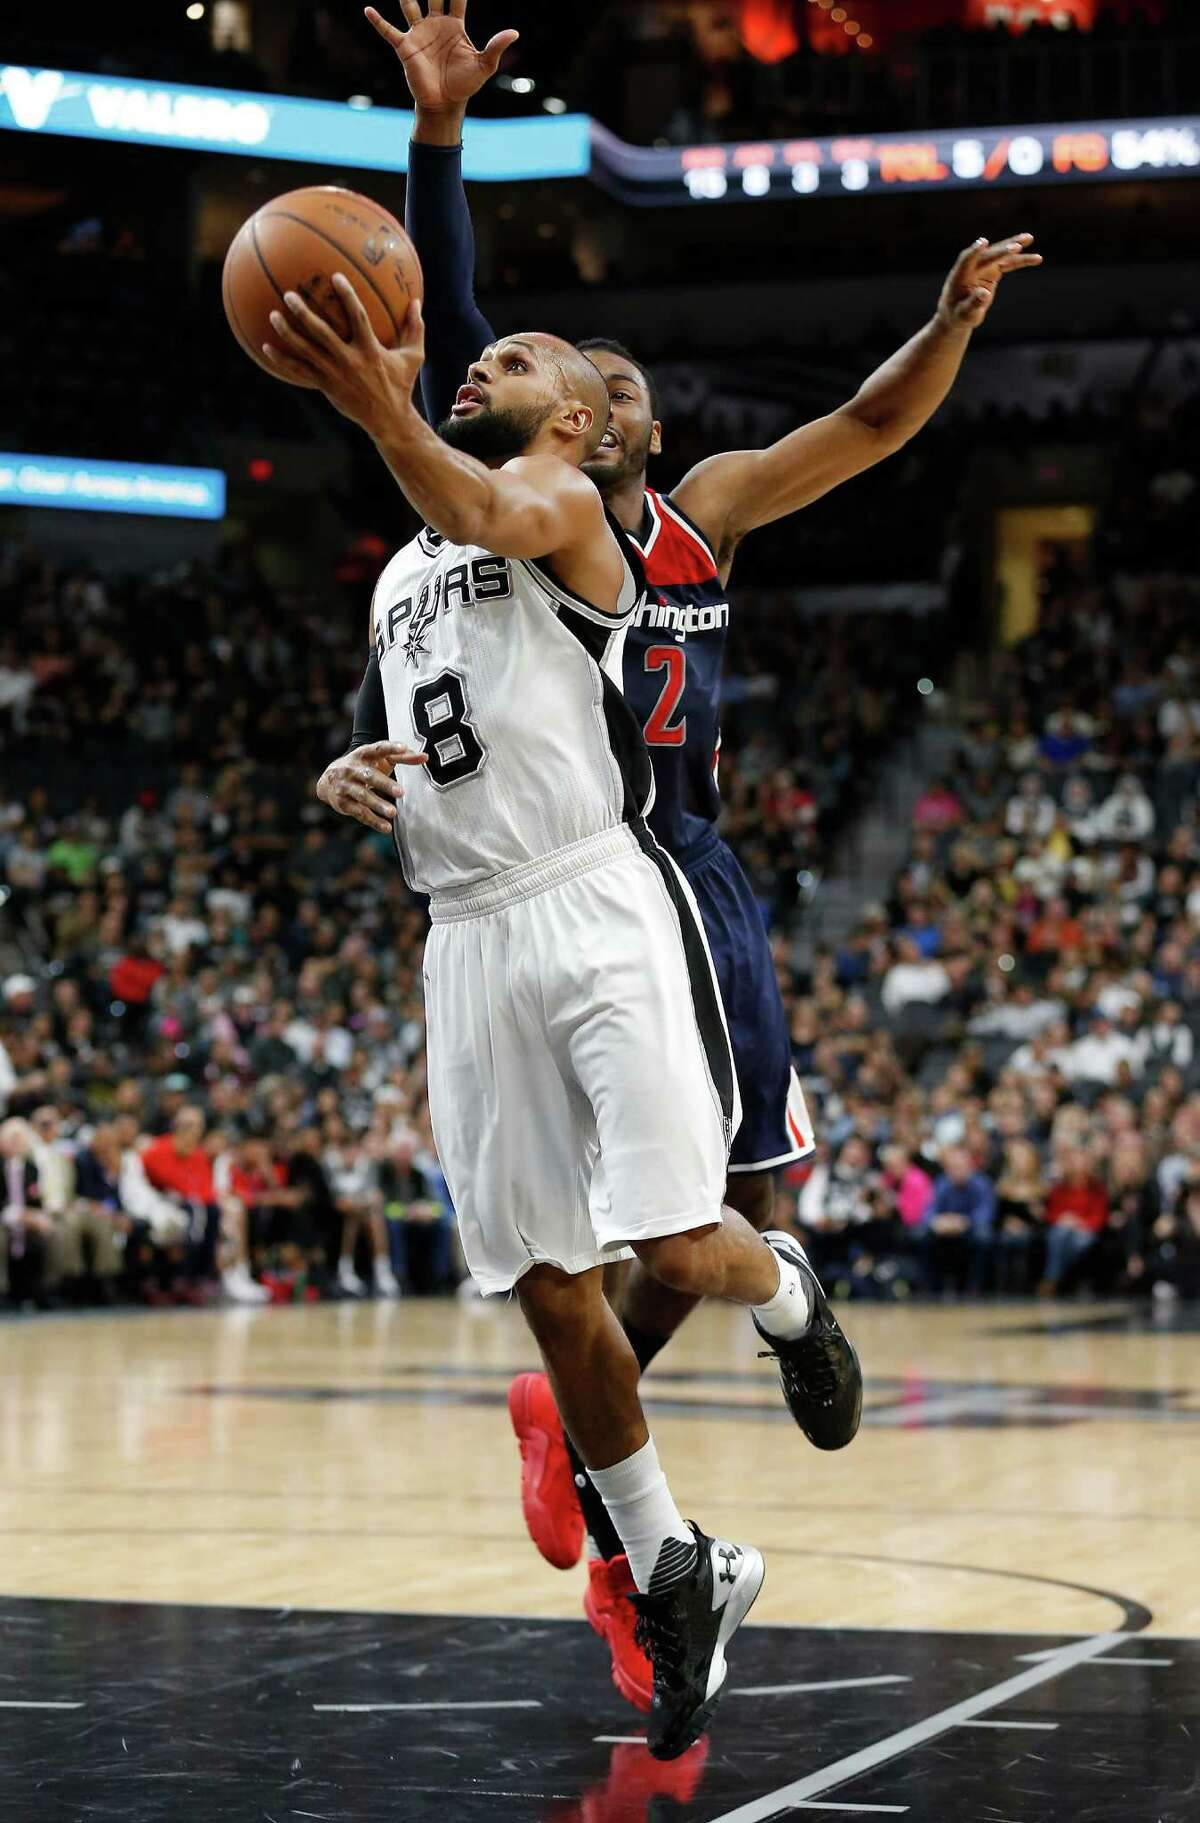 Spurs' Patty Mills (08) drives past Washington Wizards' John Wall (02) at the AT&T Center on Wednesday, Dec. 16, 2015. Spurs defeated the Wizards, 114-95. (Kin Man Hui/San Antonio Express-News)